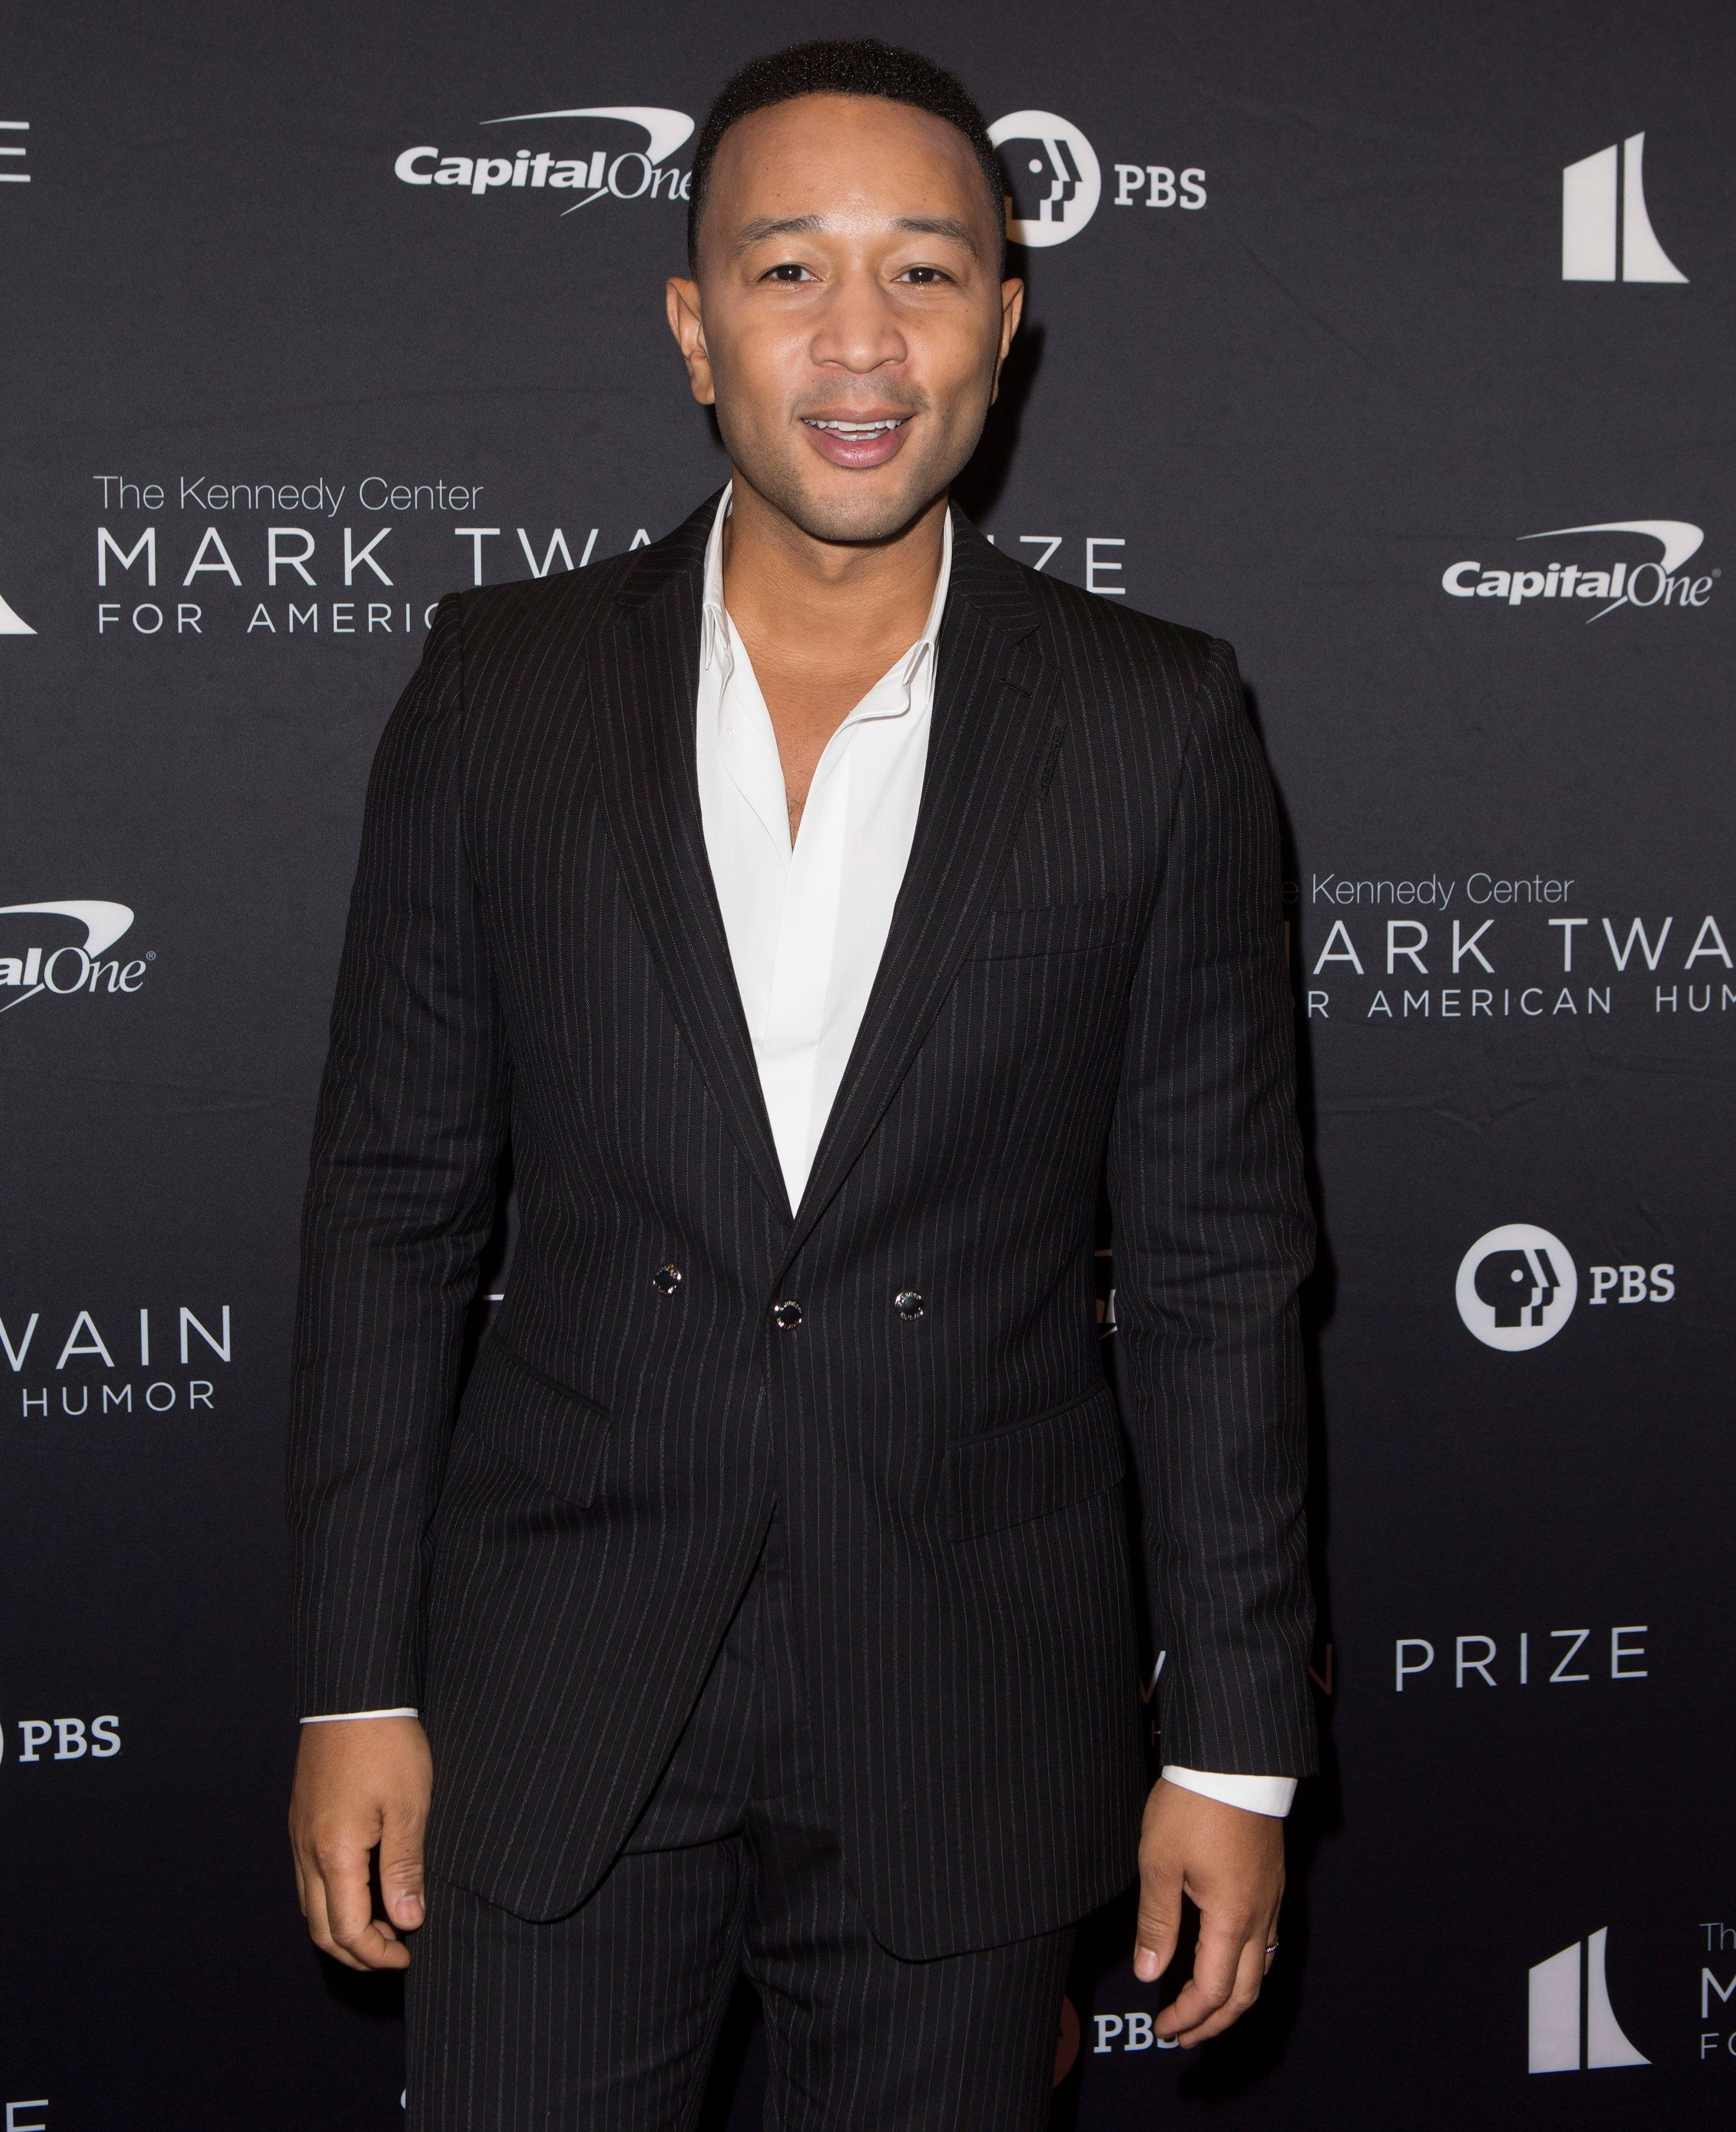 John Legend Reacts To Being Crowned PEOPLE's Sexiest Man Alive 2019 - Fame10